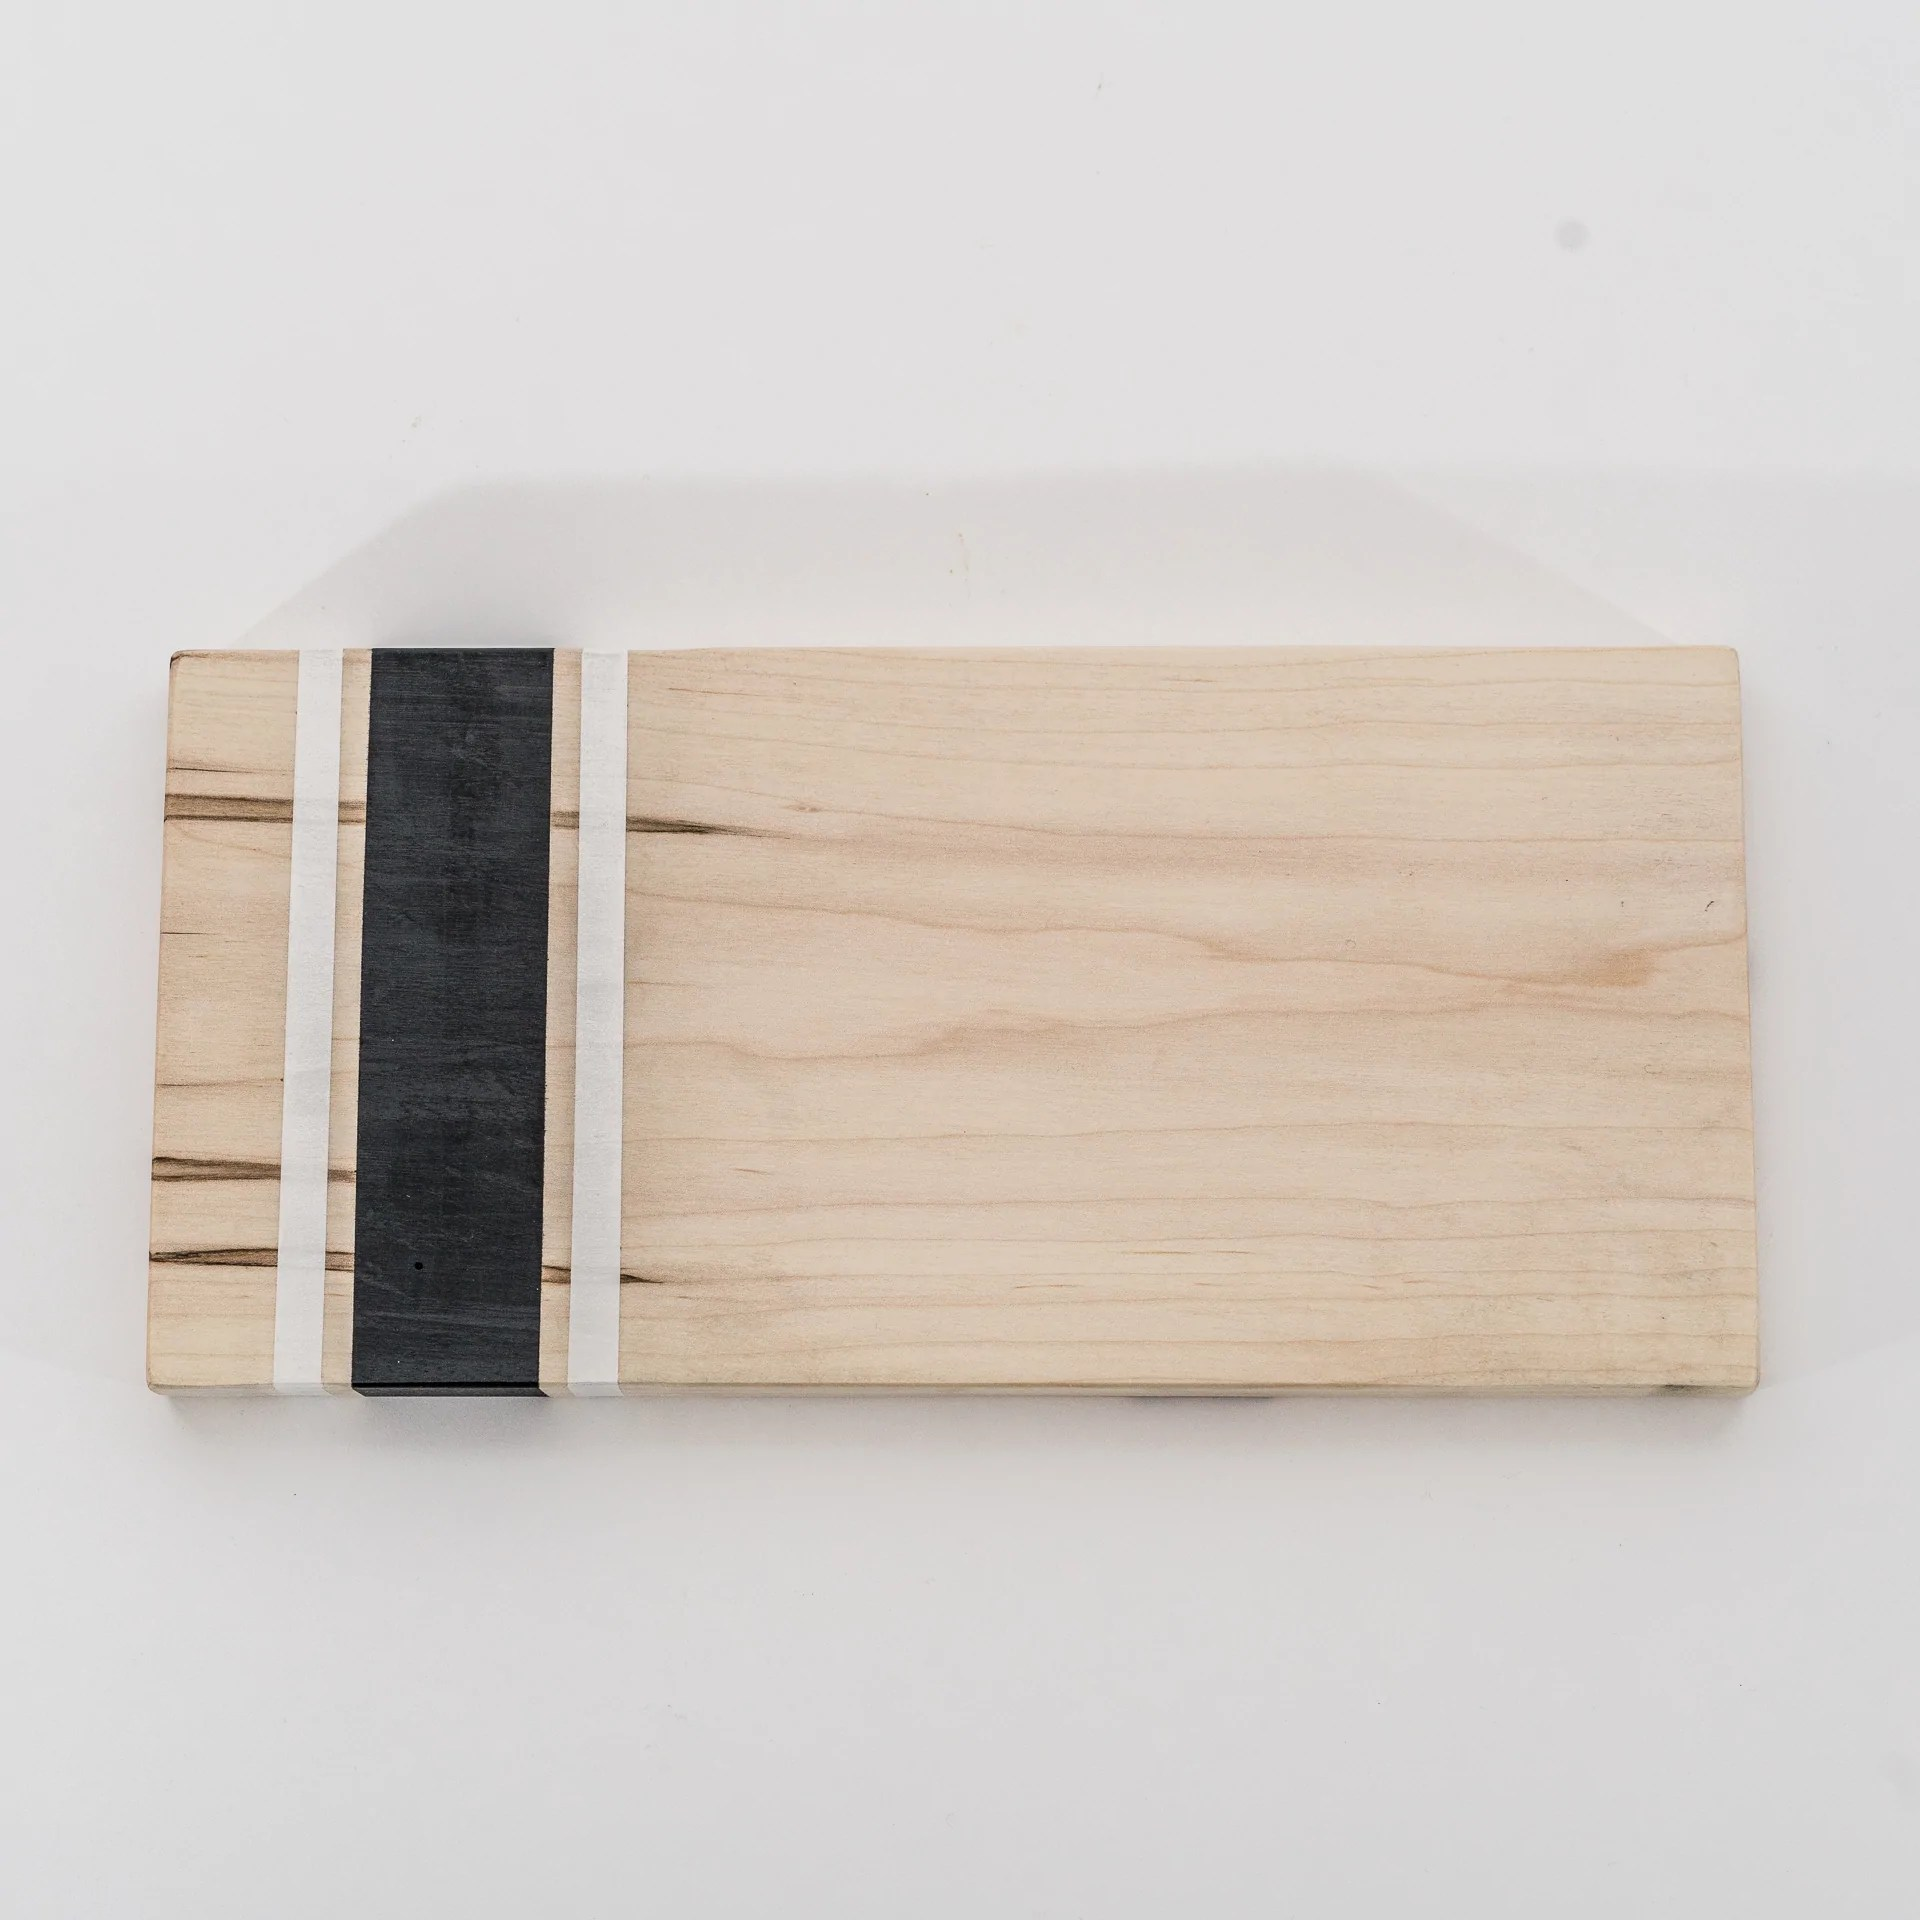 Small Marble Cutting Board Black White Contemporary Small Rectangular Solid Wood Cutting